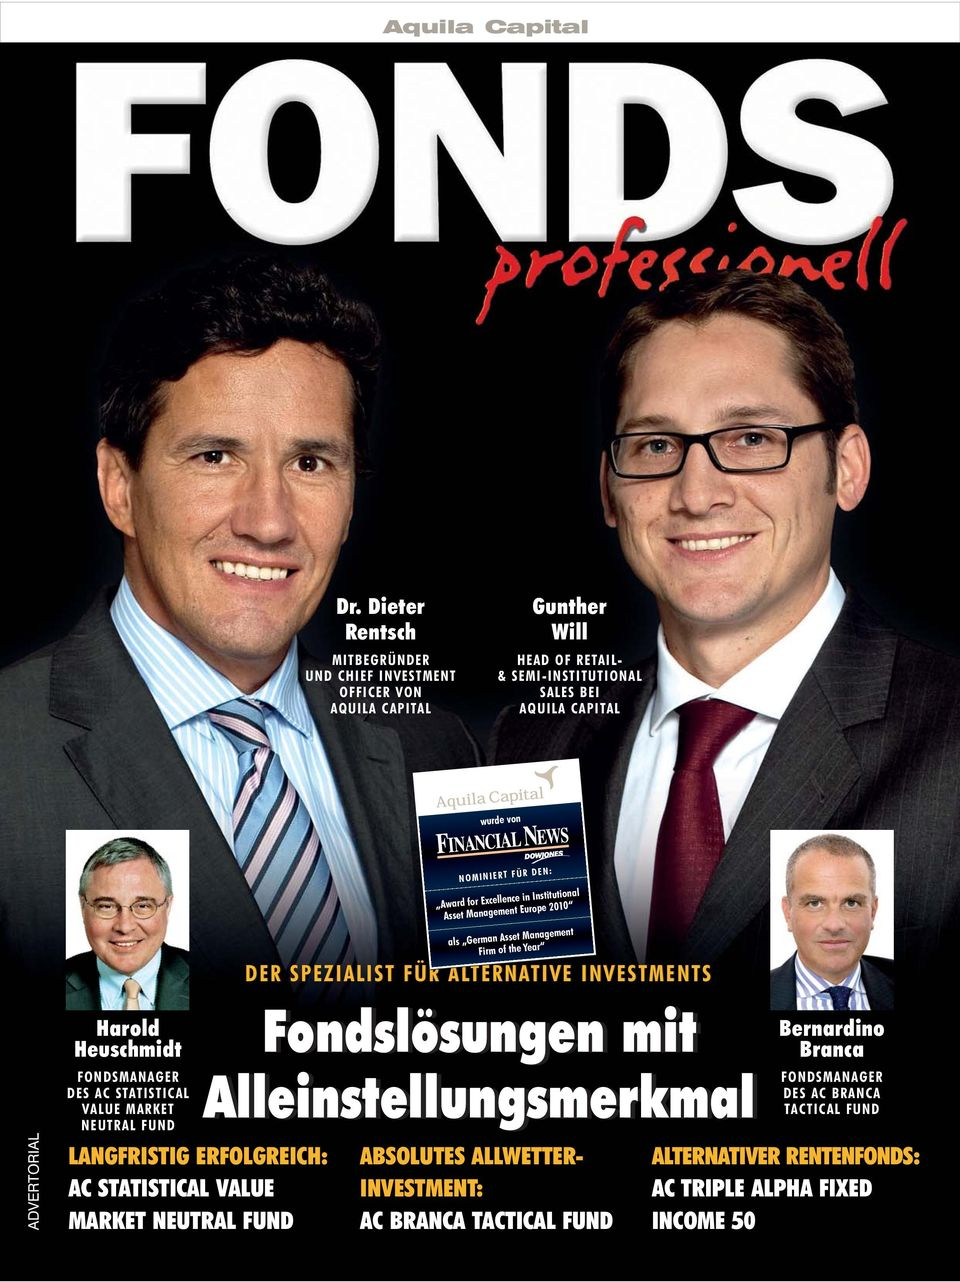 Heuschmidt FONDSMANAGER DES AC STATISTICAL VALUE MARKET NEUTRAL FUND LANGFRISTIG ERFOLGREICH: AC STATISTICAL VALUE MARKET NEUTRAL FUND NOMINIERT FÜR DEN: Award for Excellence in